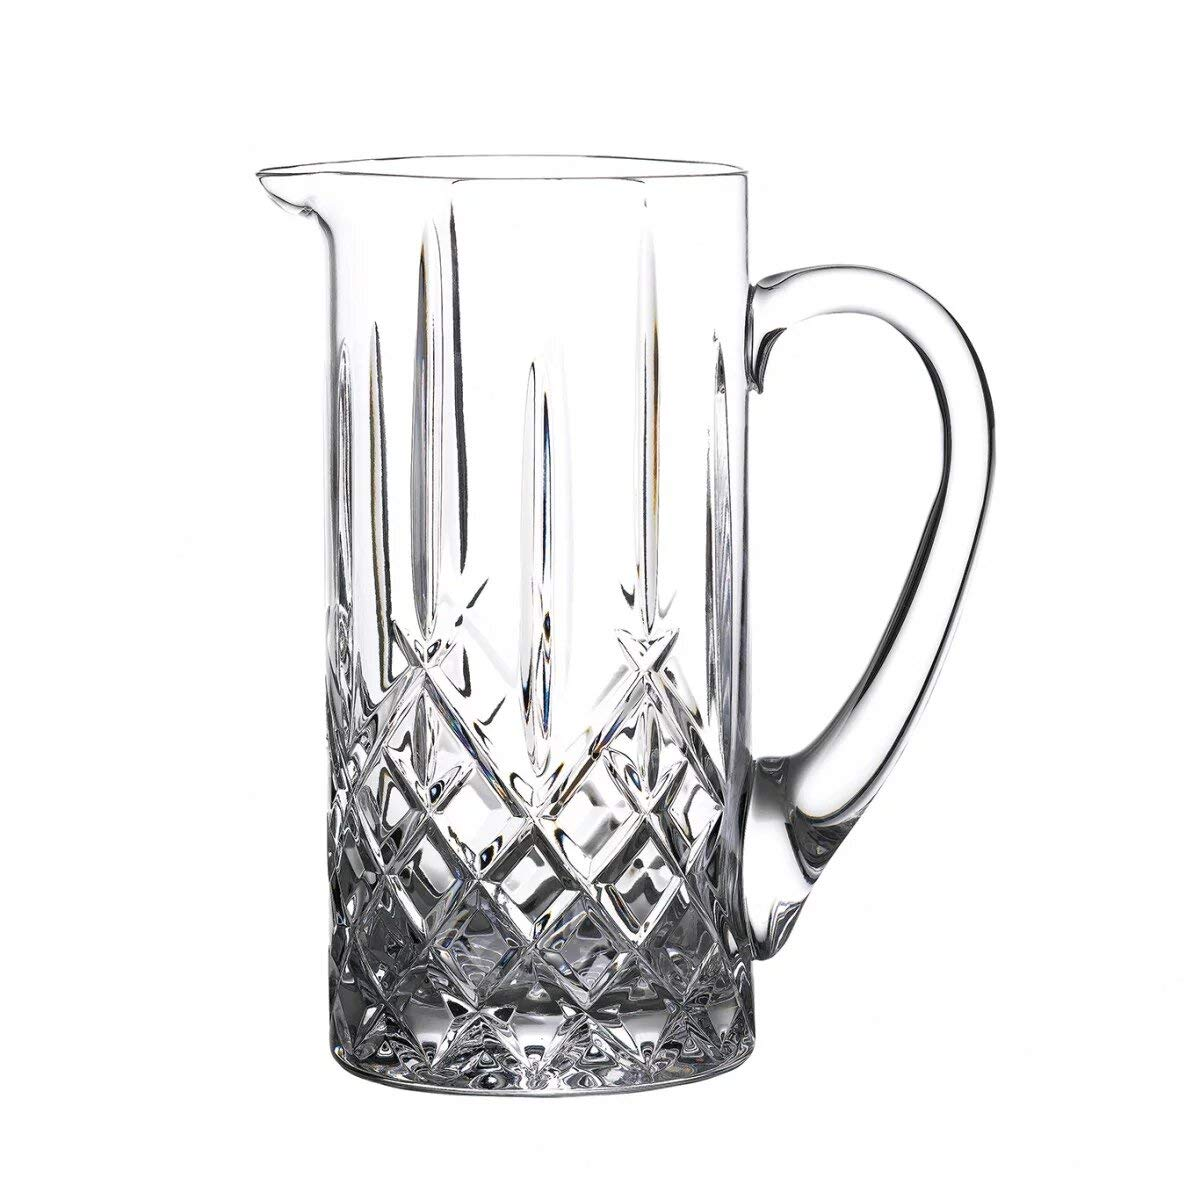 Marquis by Waterford 40034564 Markham Pitcher/Jug 48 oz. capacity Clear